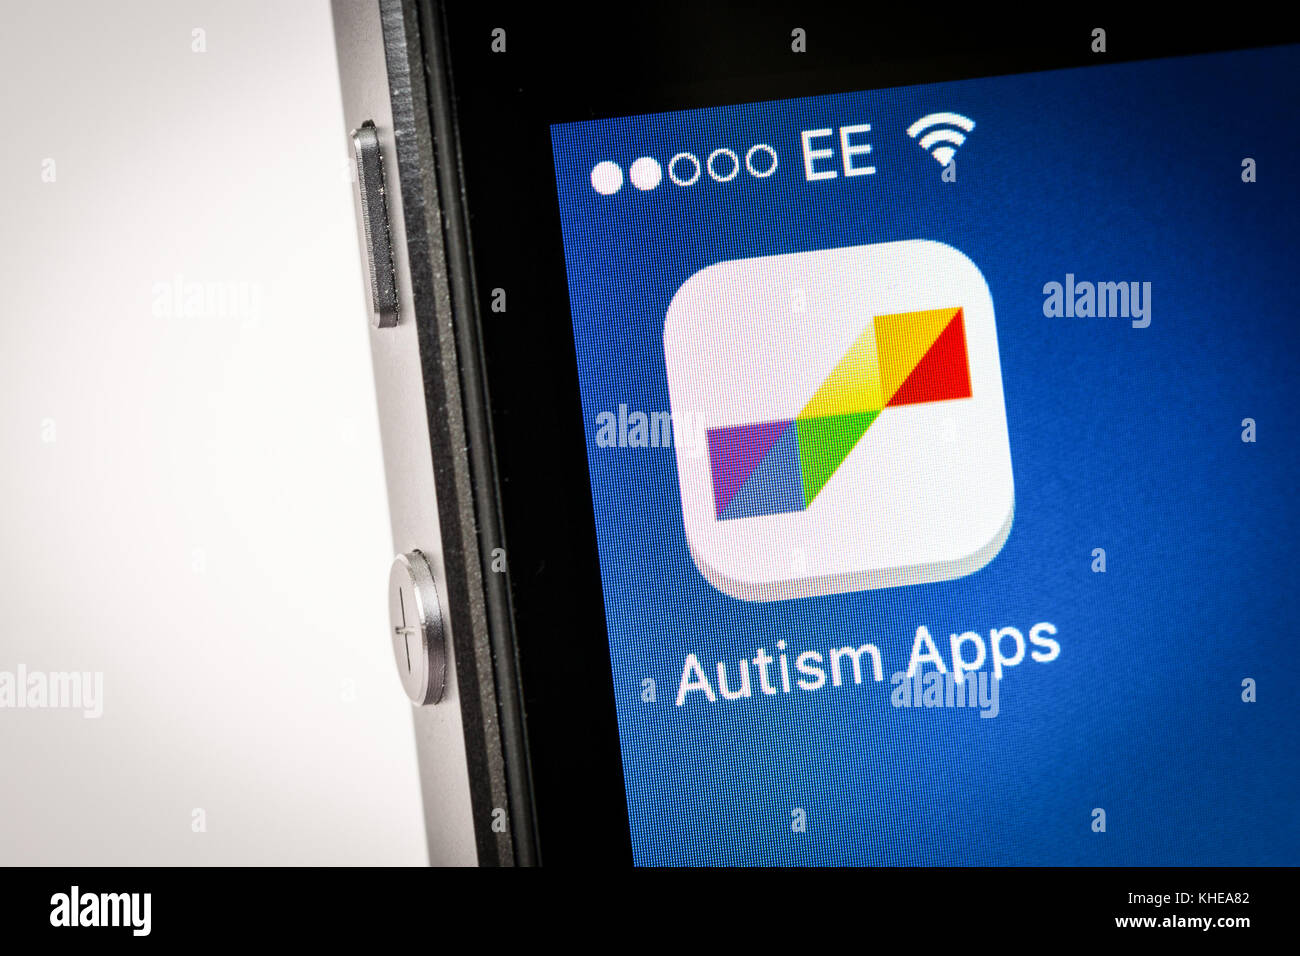 Autism apps app on an iPhone - Stock Image